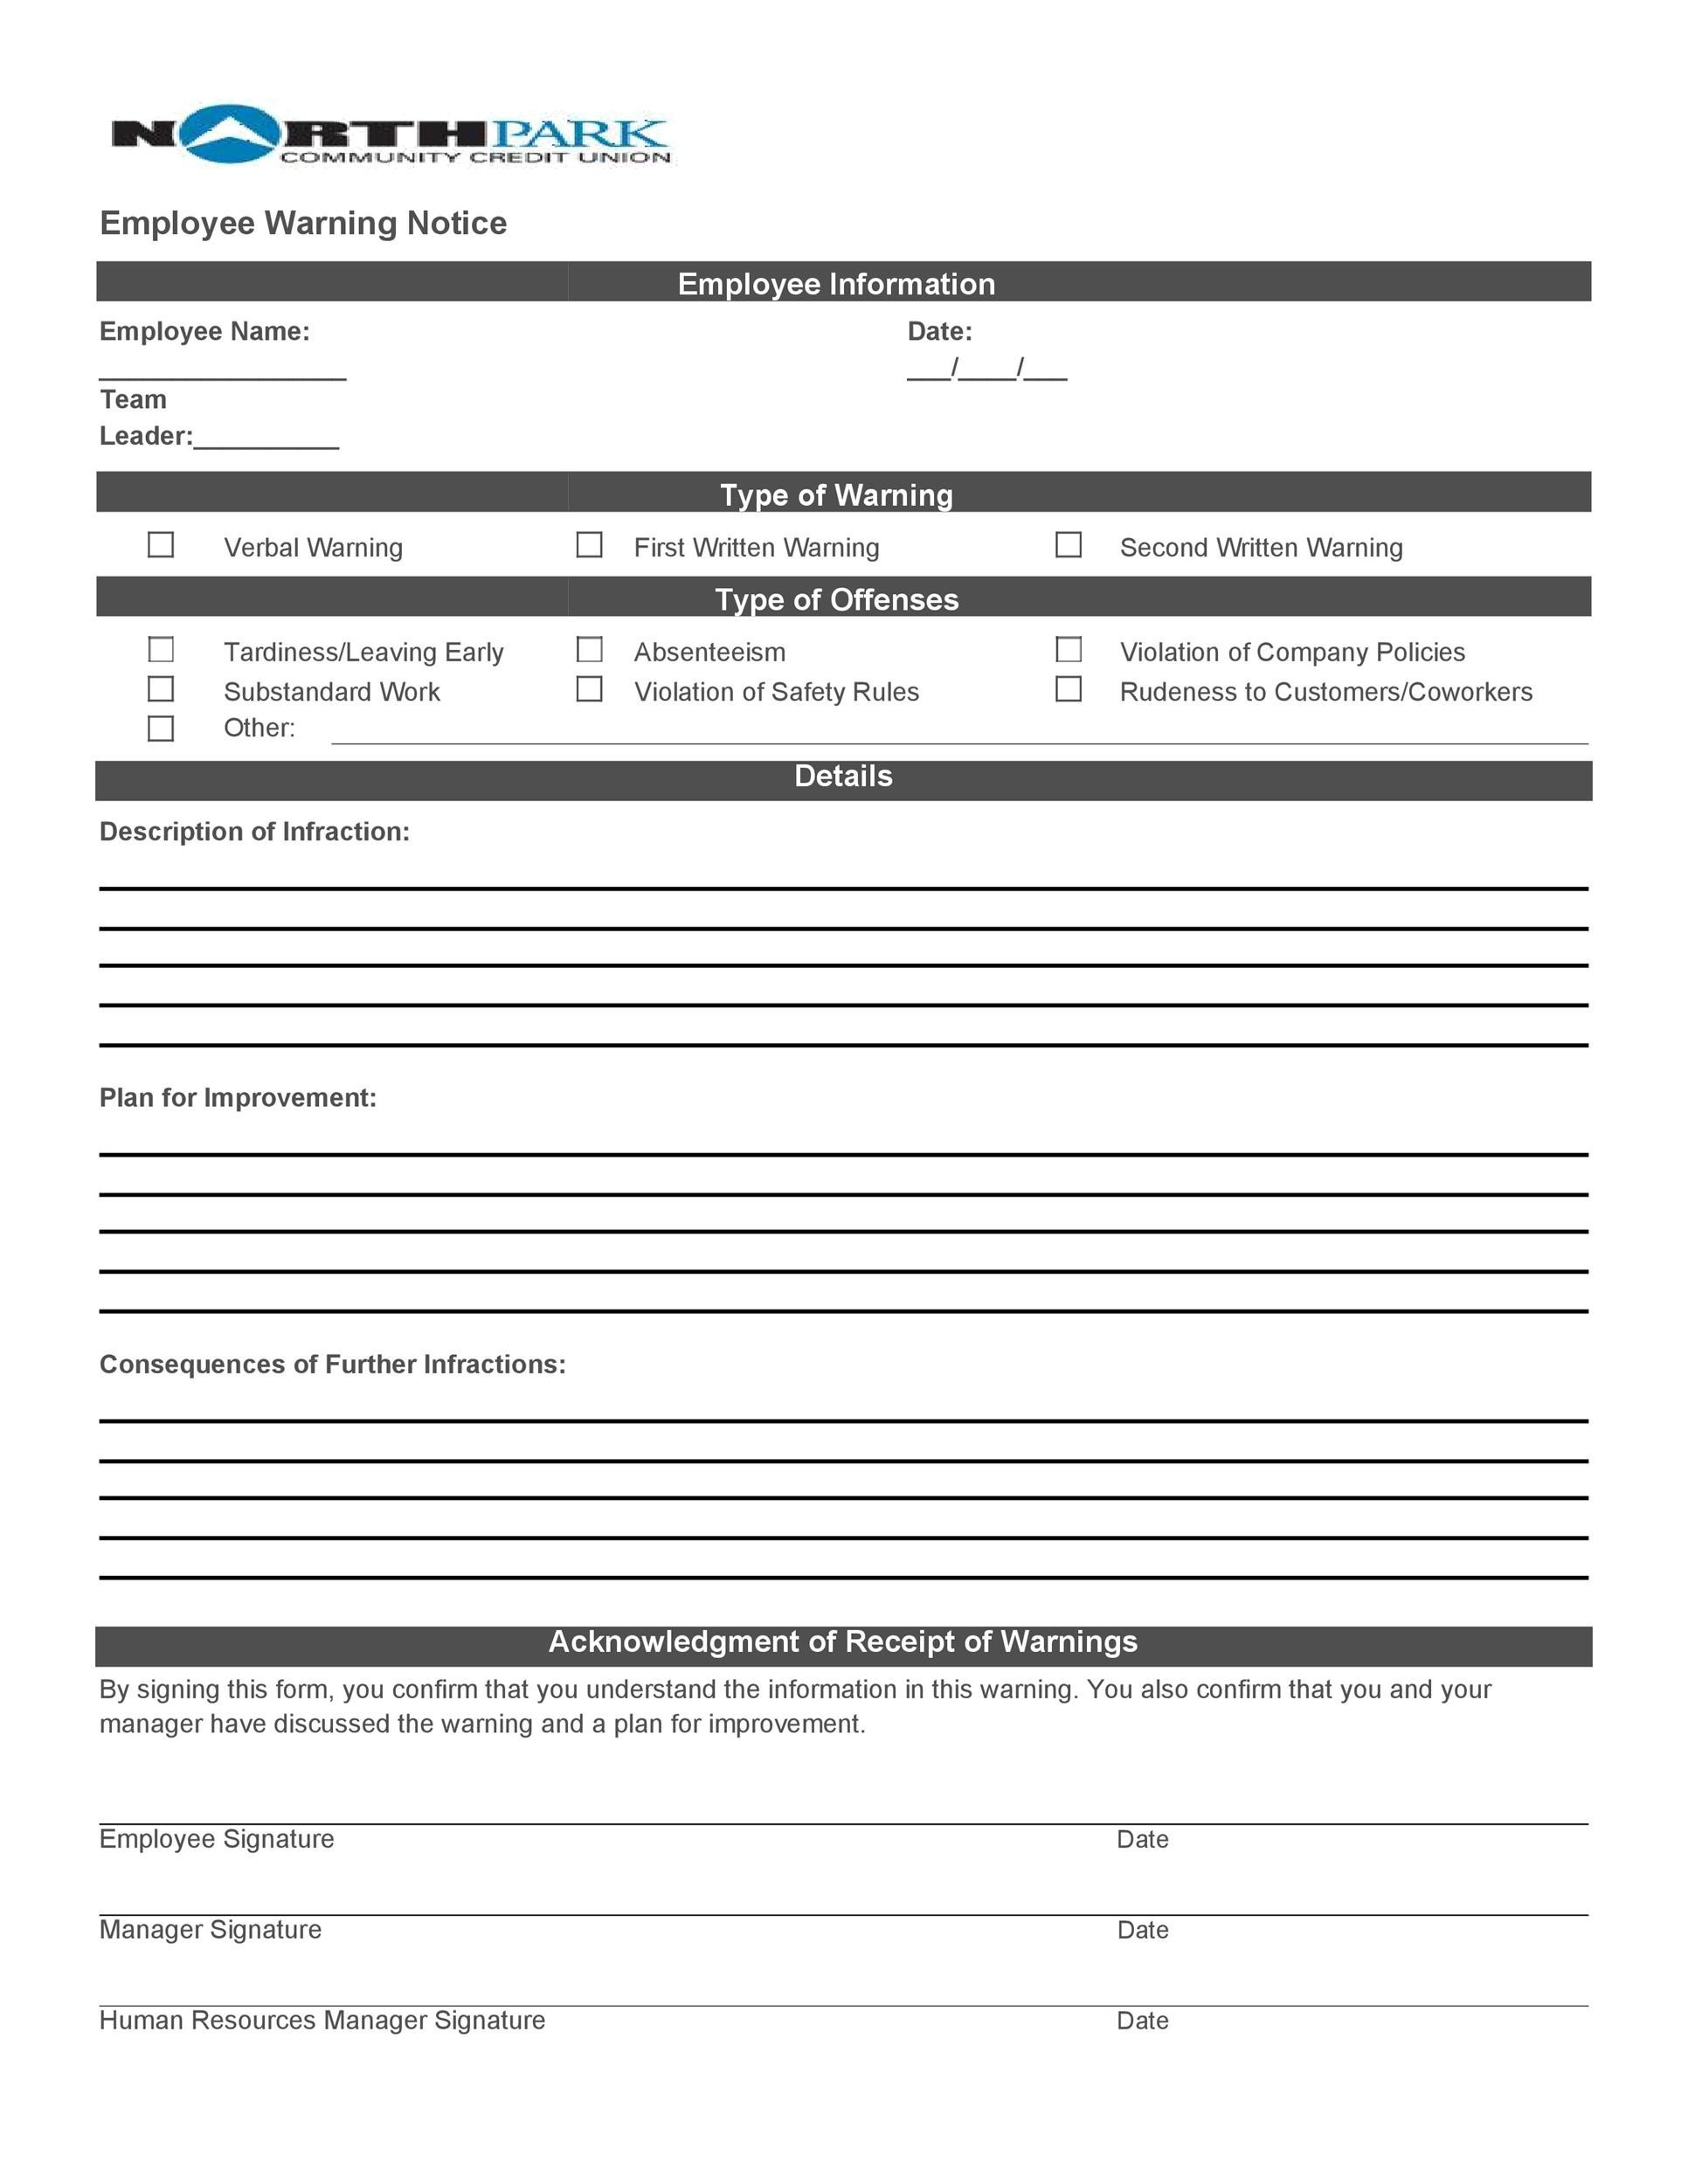 Employee Warning Notice - Download 56 Free Templates  Forms